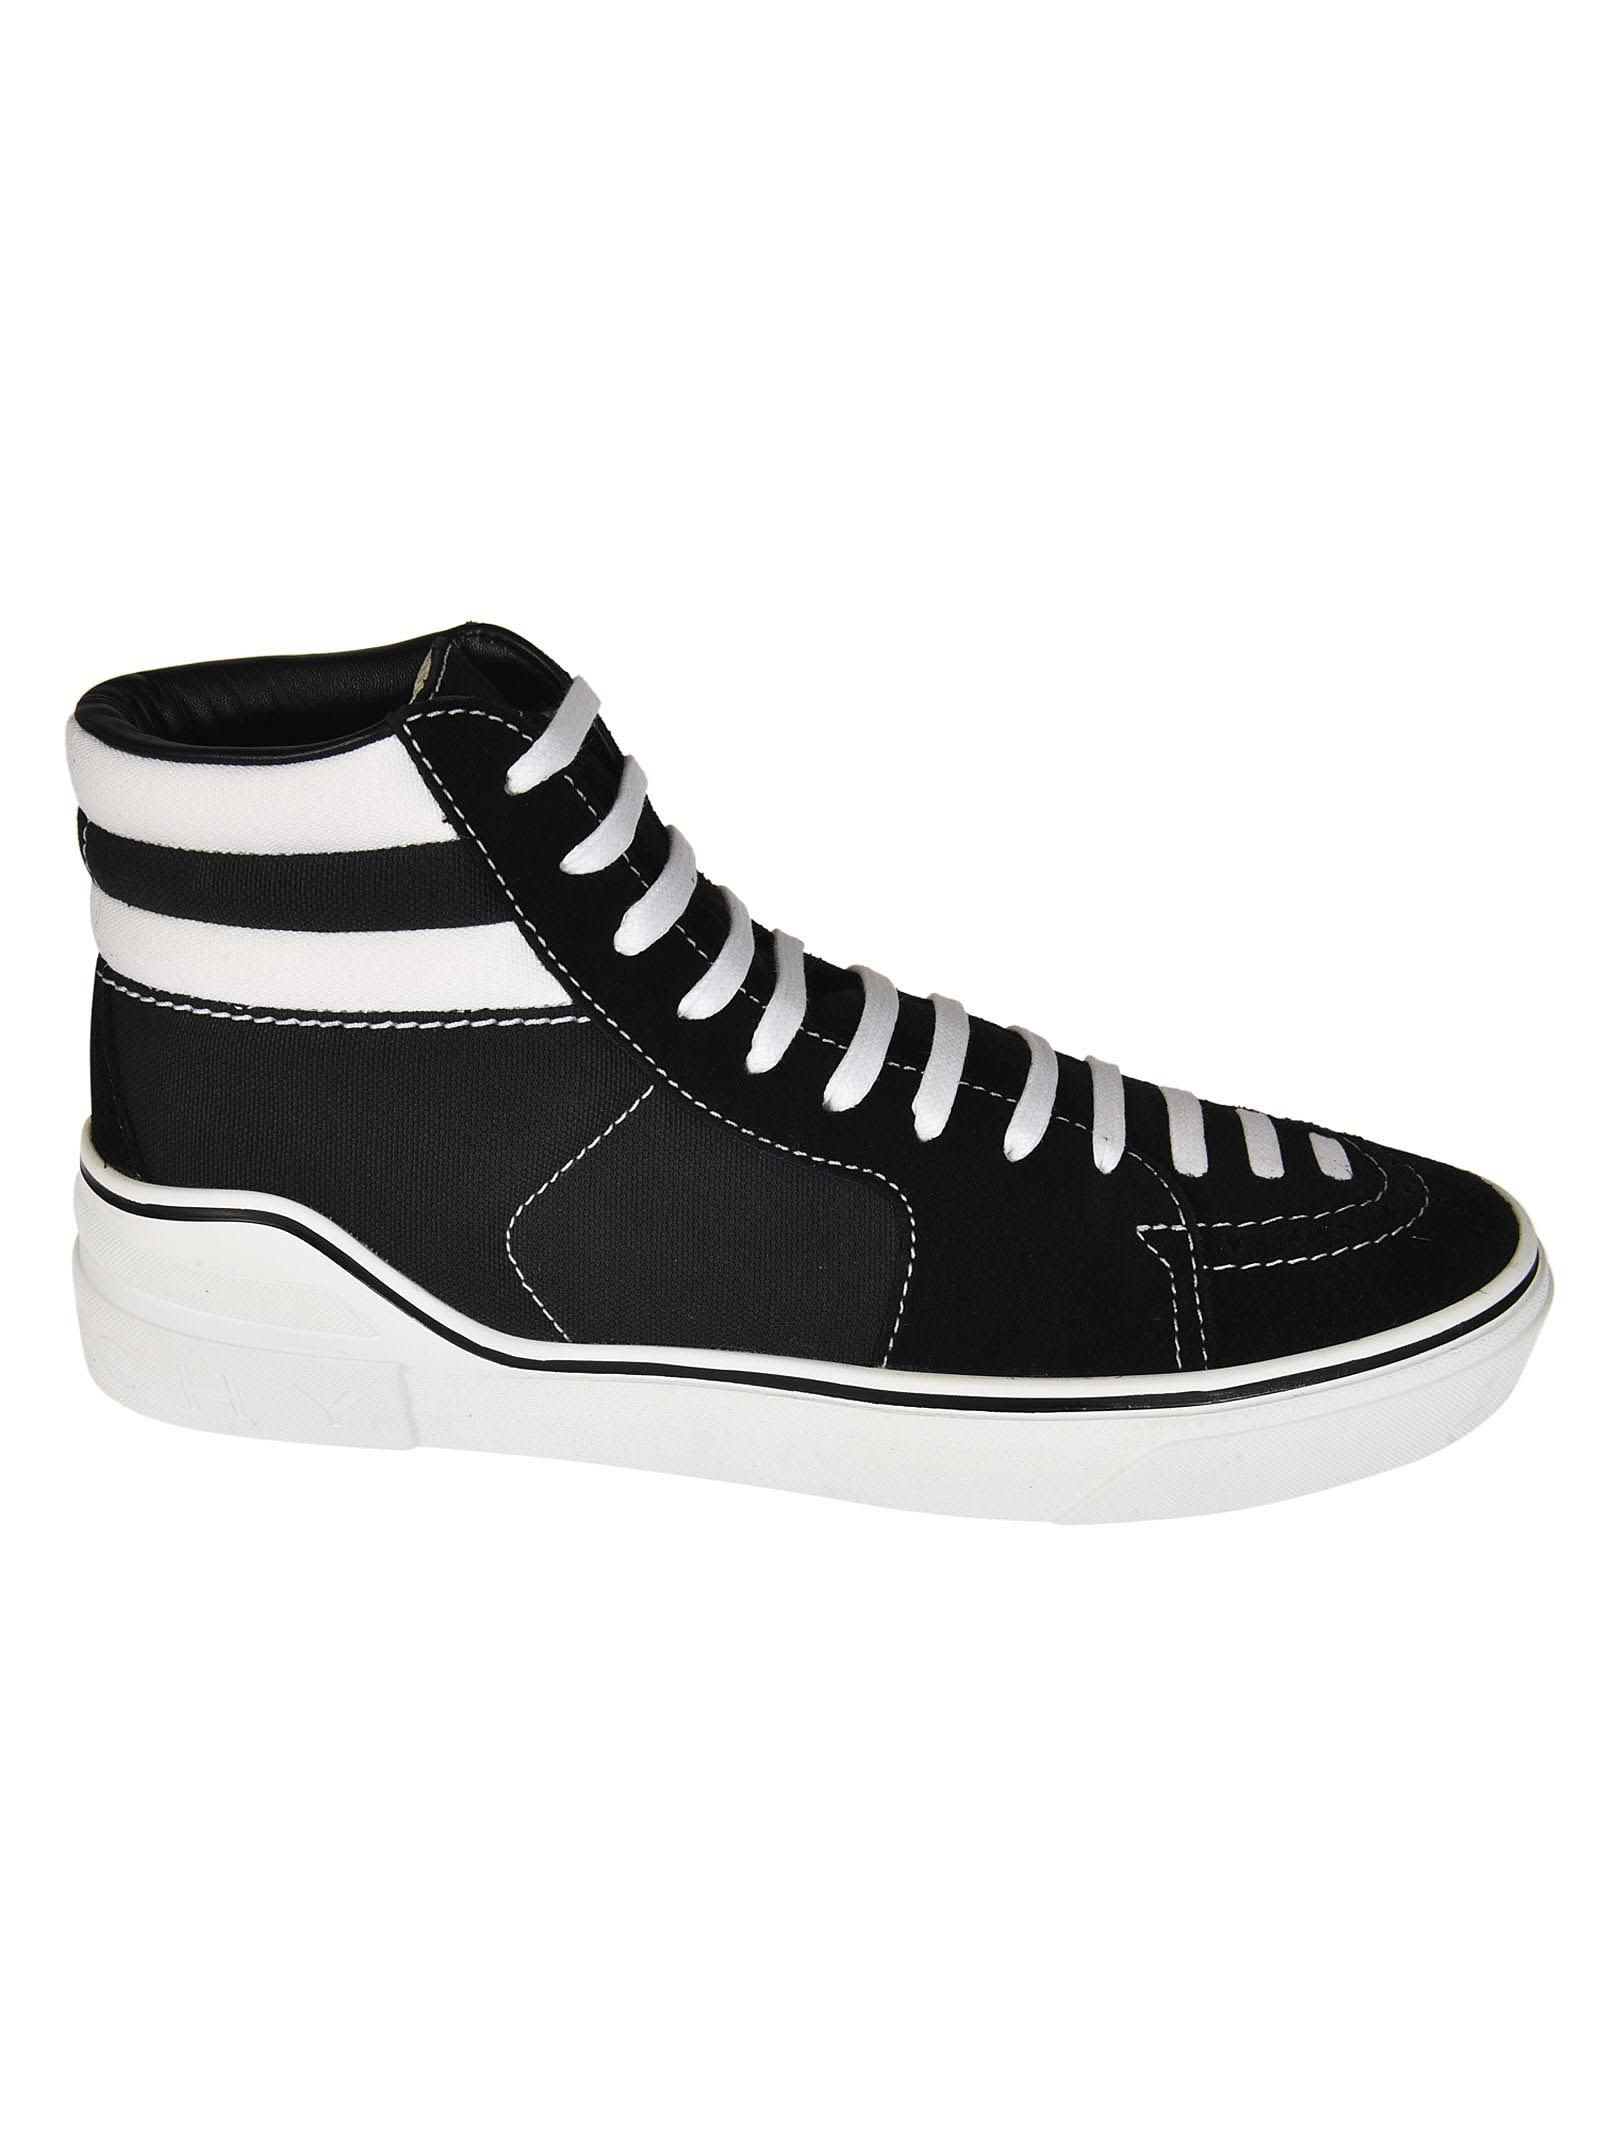 Givenchy Skate Hi-top Sneakers